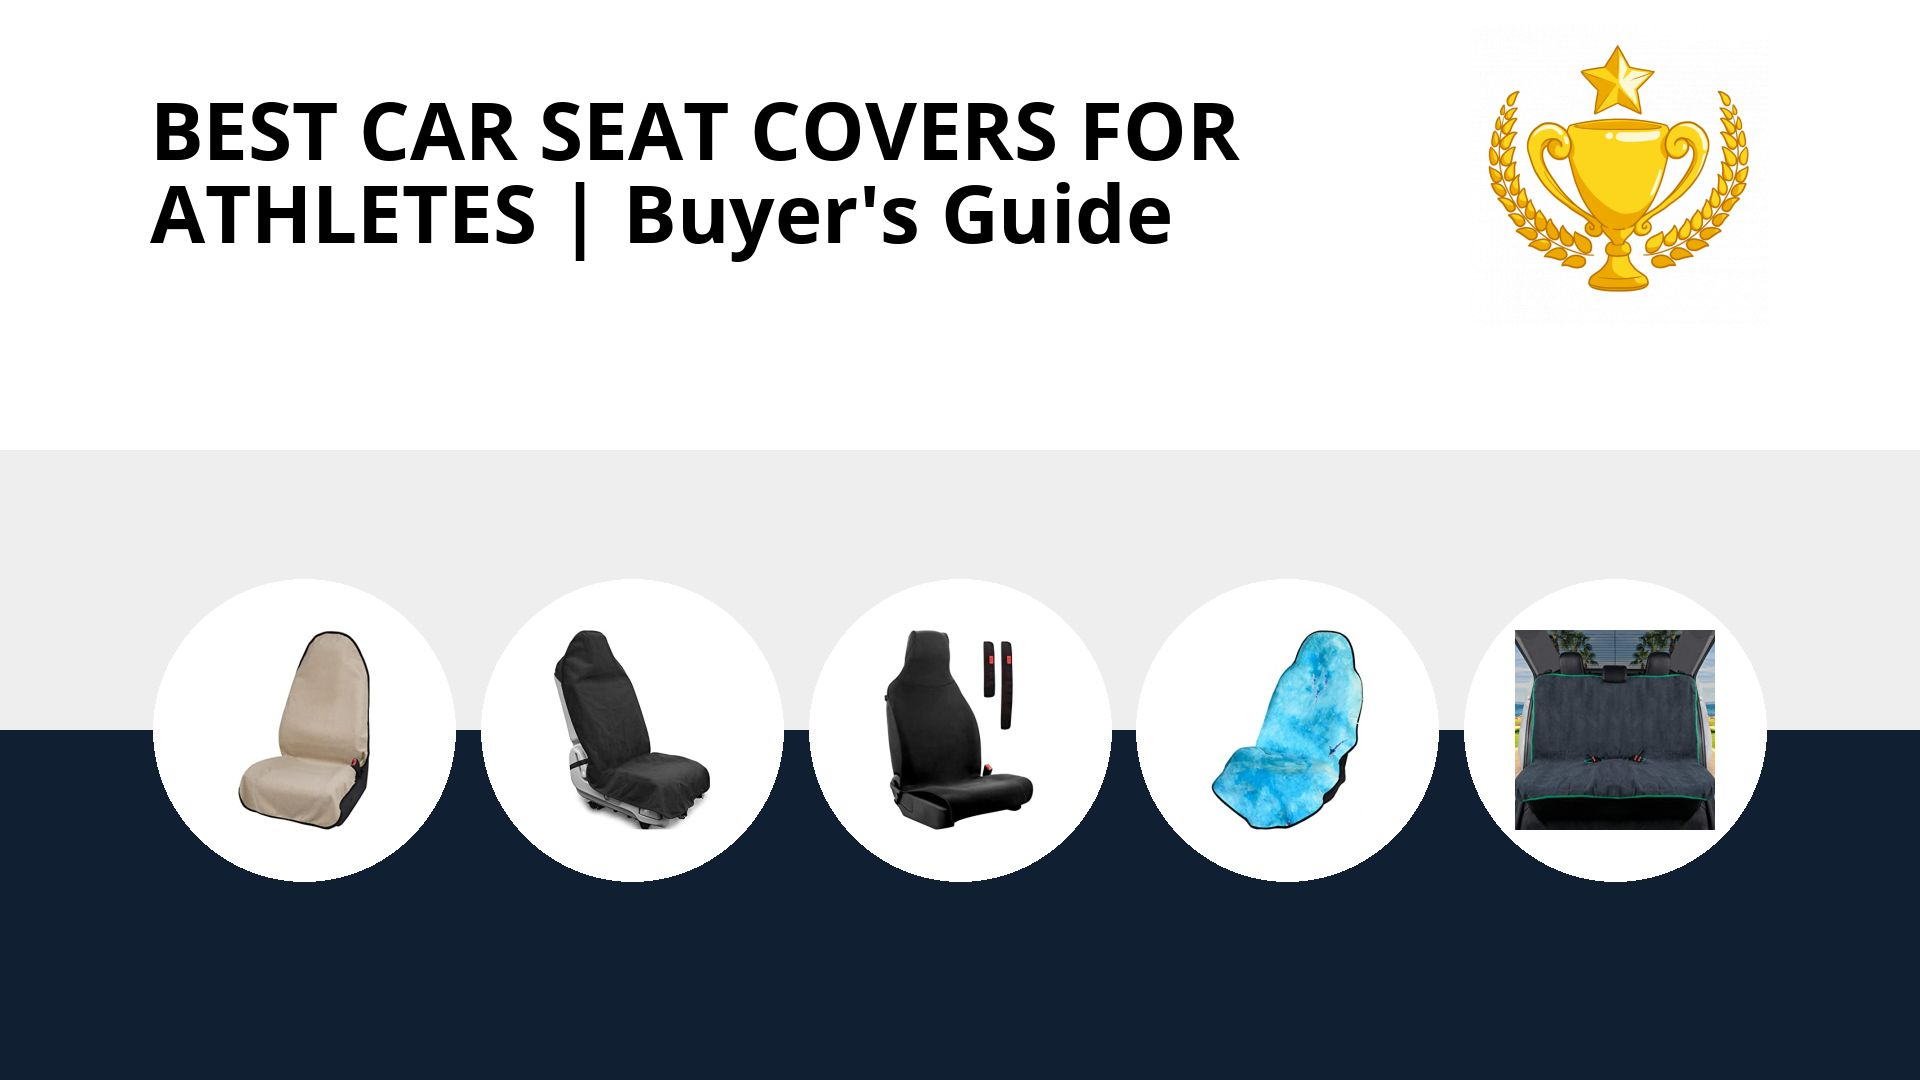 Best Car Seat Covers For Athletes: image